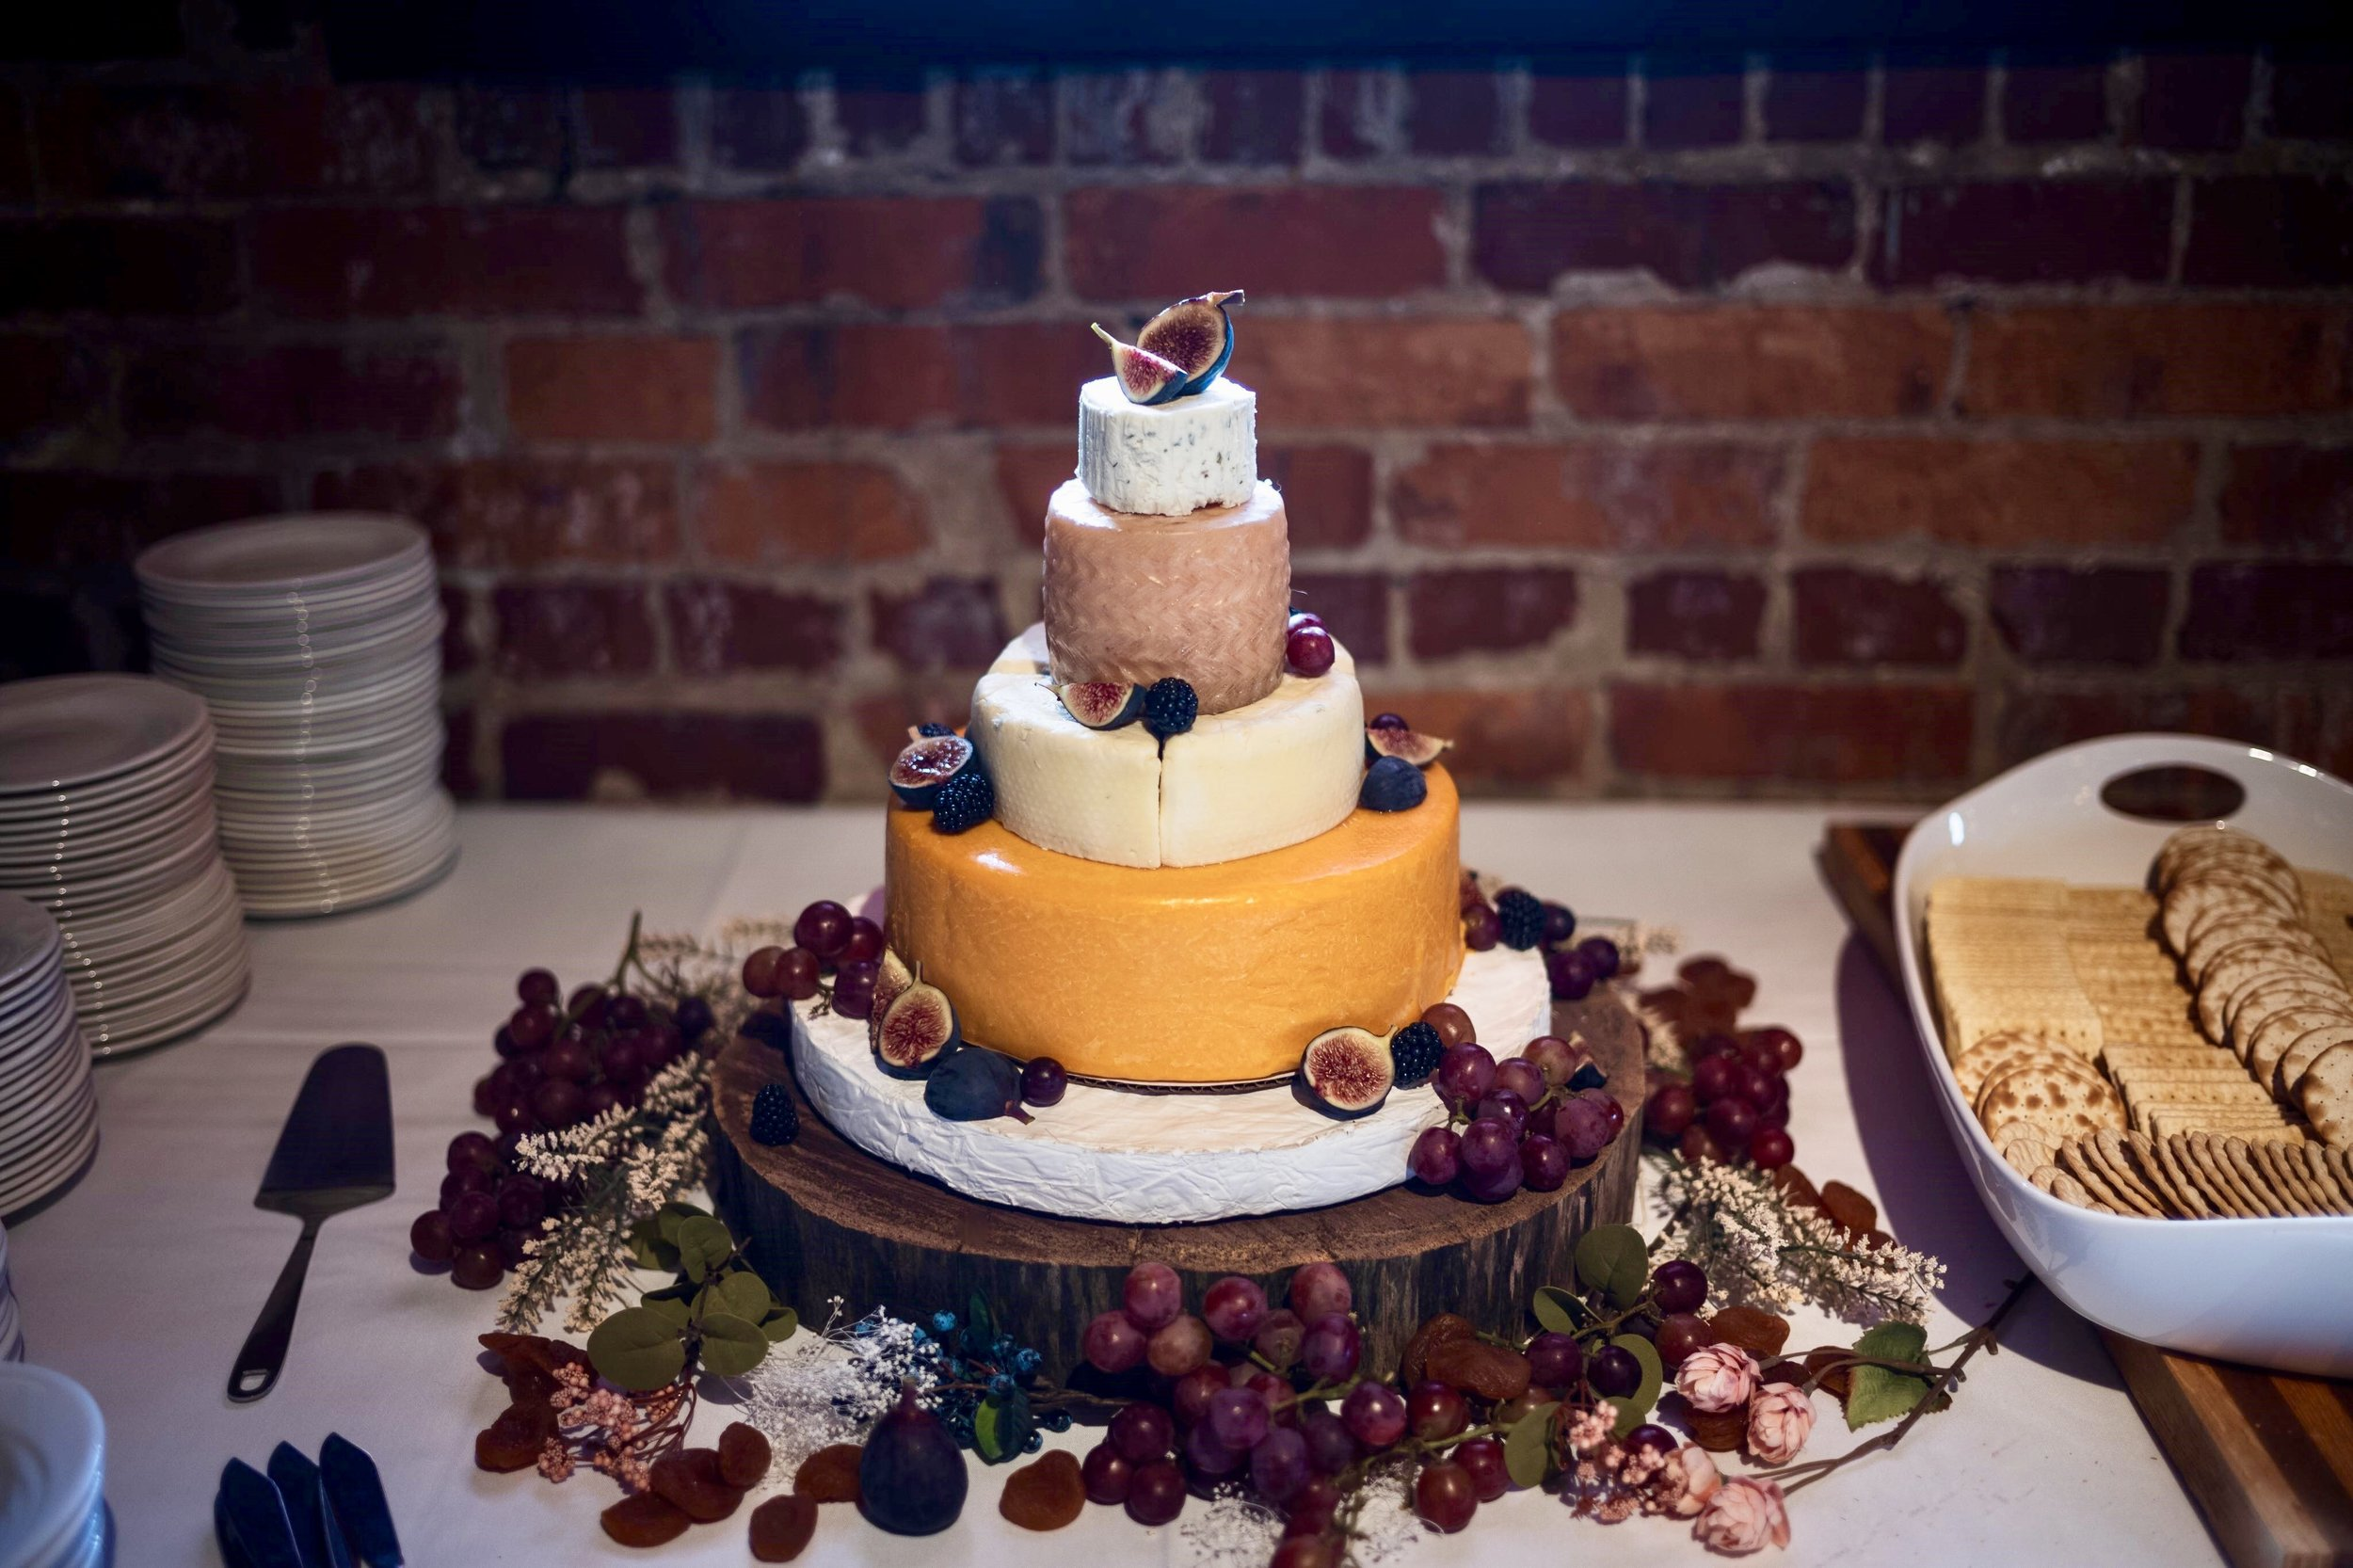 How to Make a Cheese Wheel Wedding Cake - ButterYum. how to make a non traditional wedding cake. how to make your own wedding cake. how to make a wedding cake out of cheese. how to make a wedding cake from wheels of cheese. wedding wheel cheese cake. Stacked cheese wedding cake. How many pounds of cheese do I need? Alternative wedding cake ideas. wedding cake alternatives. how to make your own wedding cake. DIY wedding cake. tower of cheese wedding cake. how to make a tower of cheese wedding cake. how to make a non cake wedding cake. how to make a wedding stack of cheese cake. how to decorate a cake made of cheese.